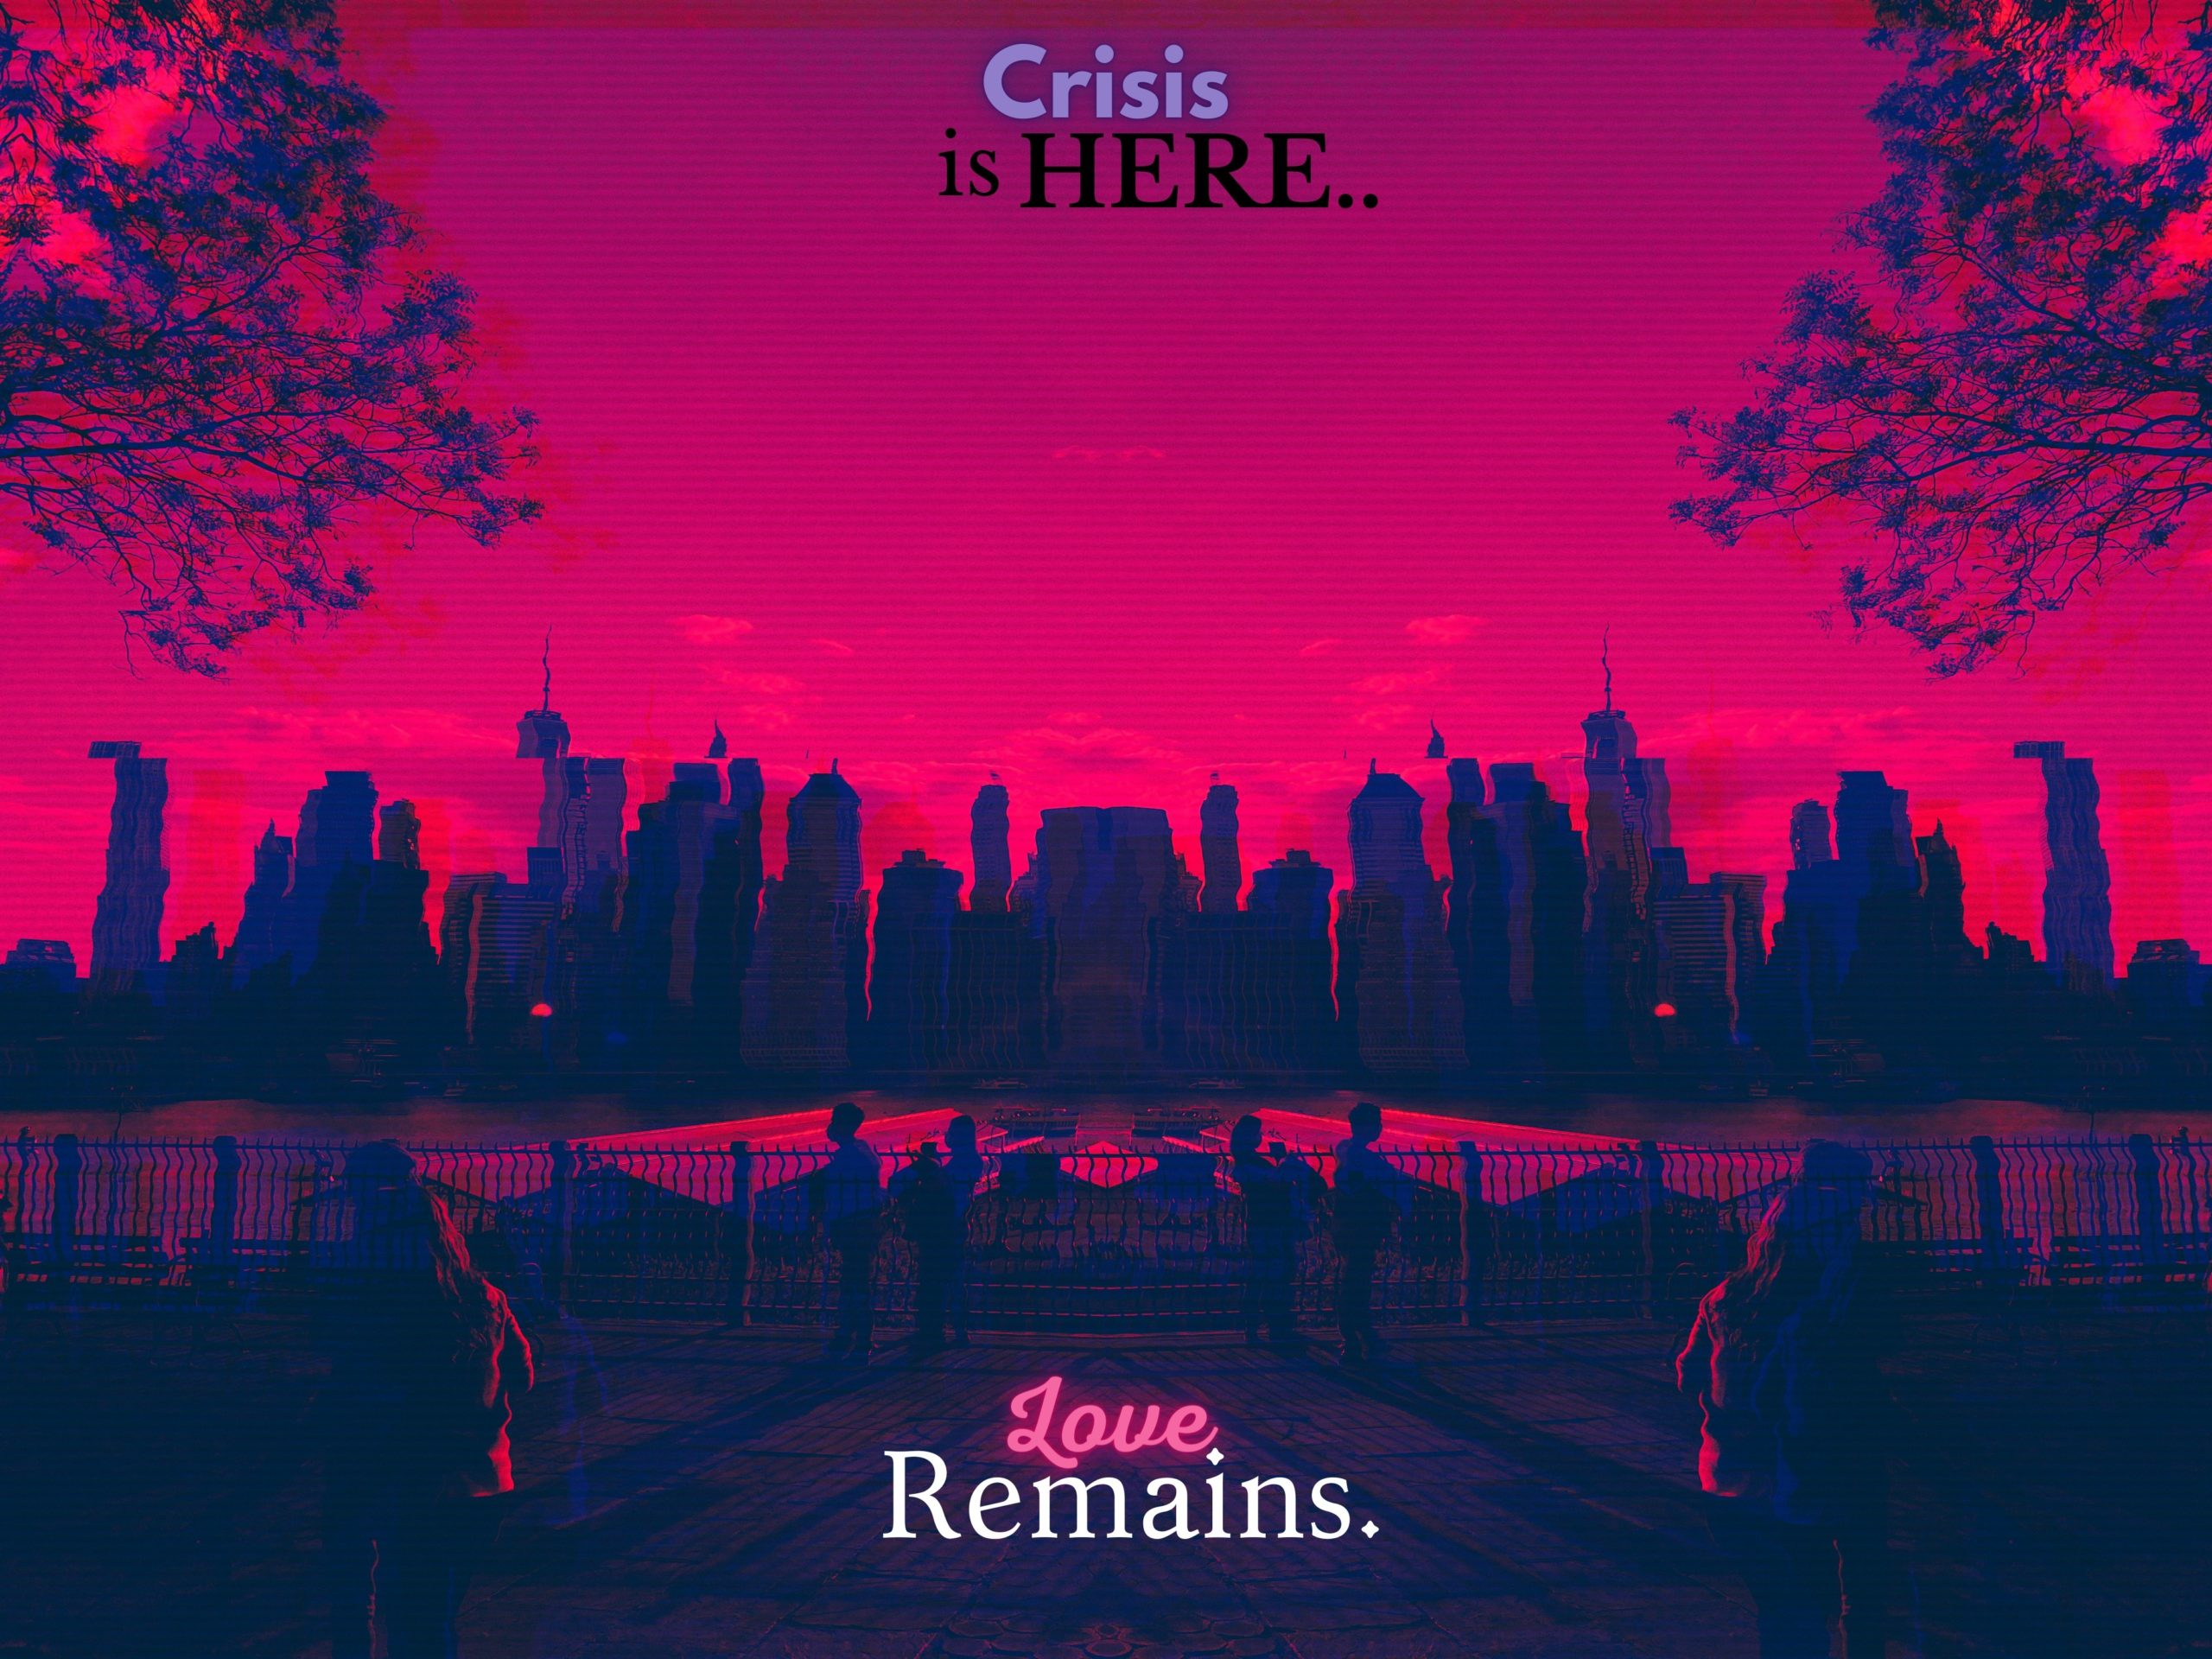 crisis is here...love remains